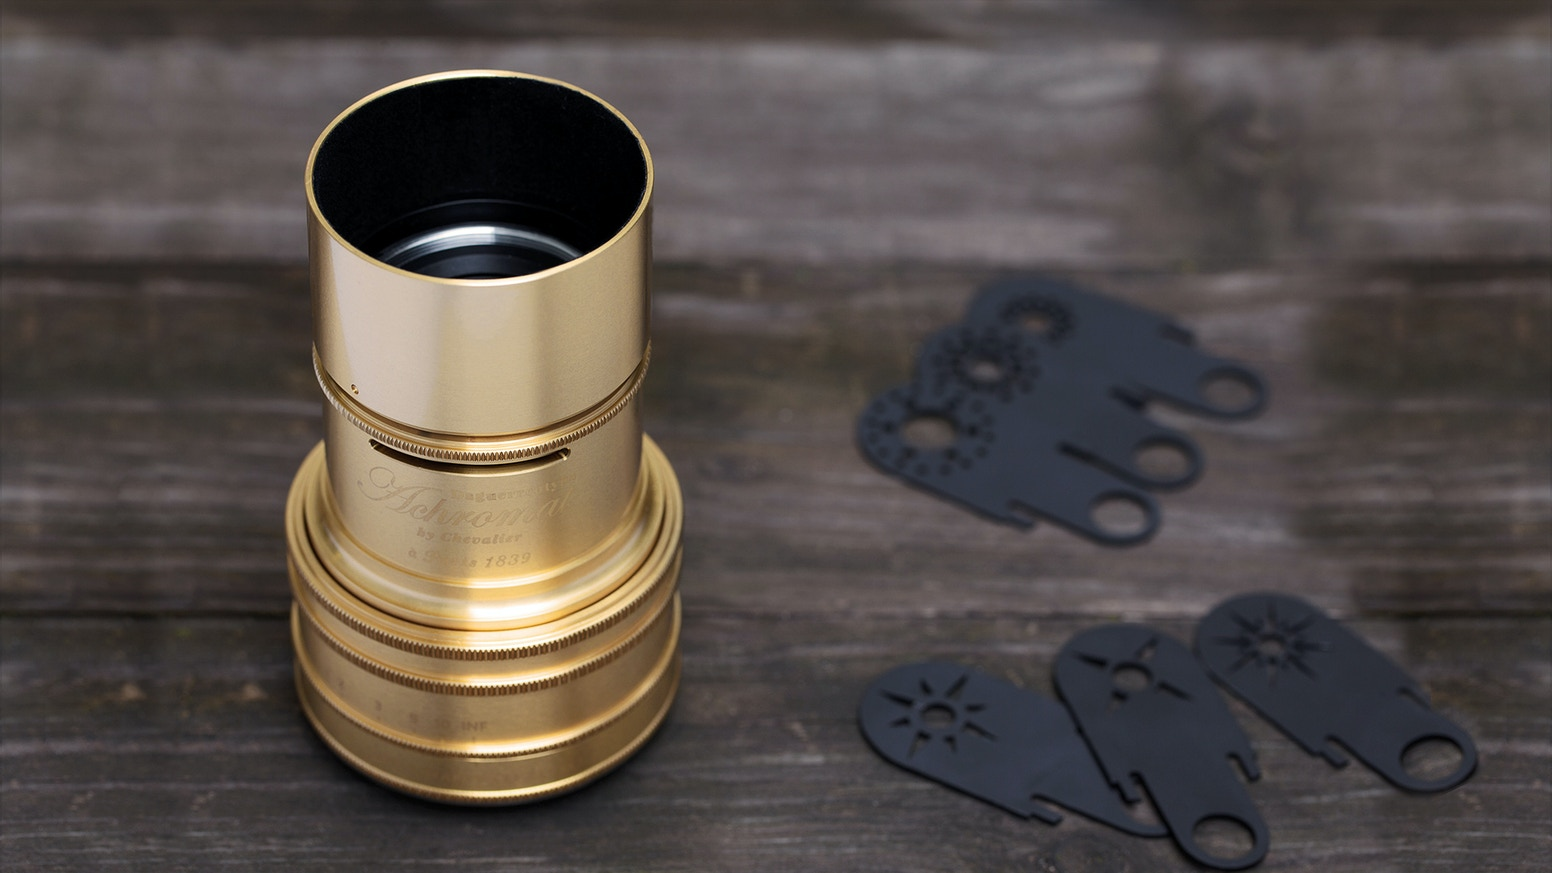 Lomography brings back a lost aesthetic: reviving the world's first photographic optic lens from 1839 ‒ for modern-day cameras.